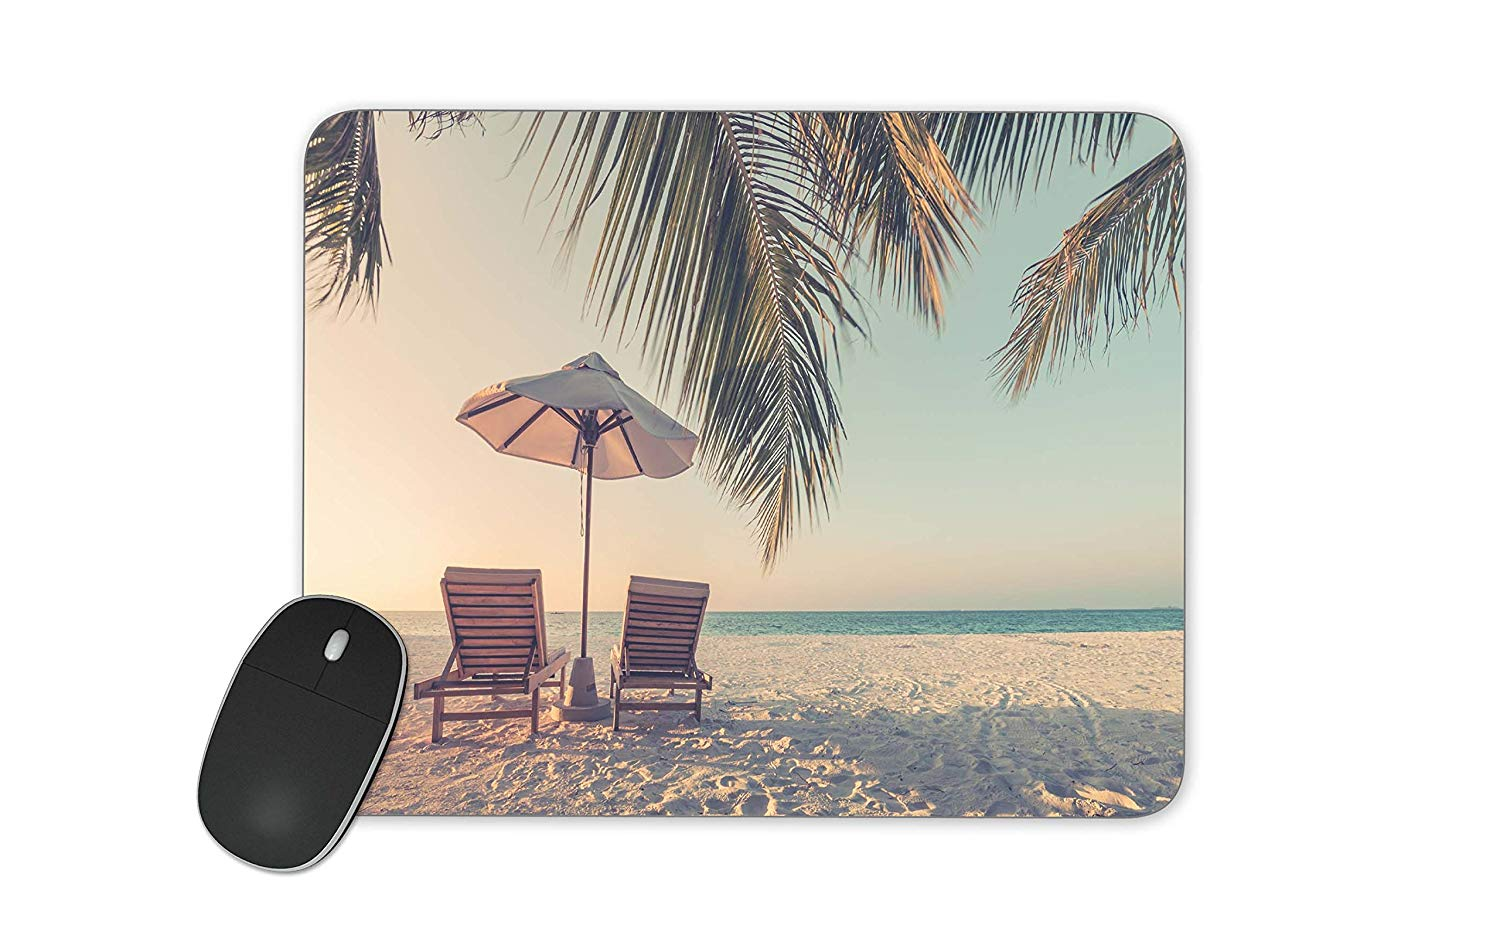 Wen Ty Chairs on the sandy beach near the sea Mouse pad Gaming Mouse pad Mousepad Nonslip Rubber Backing